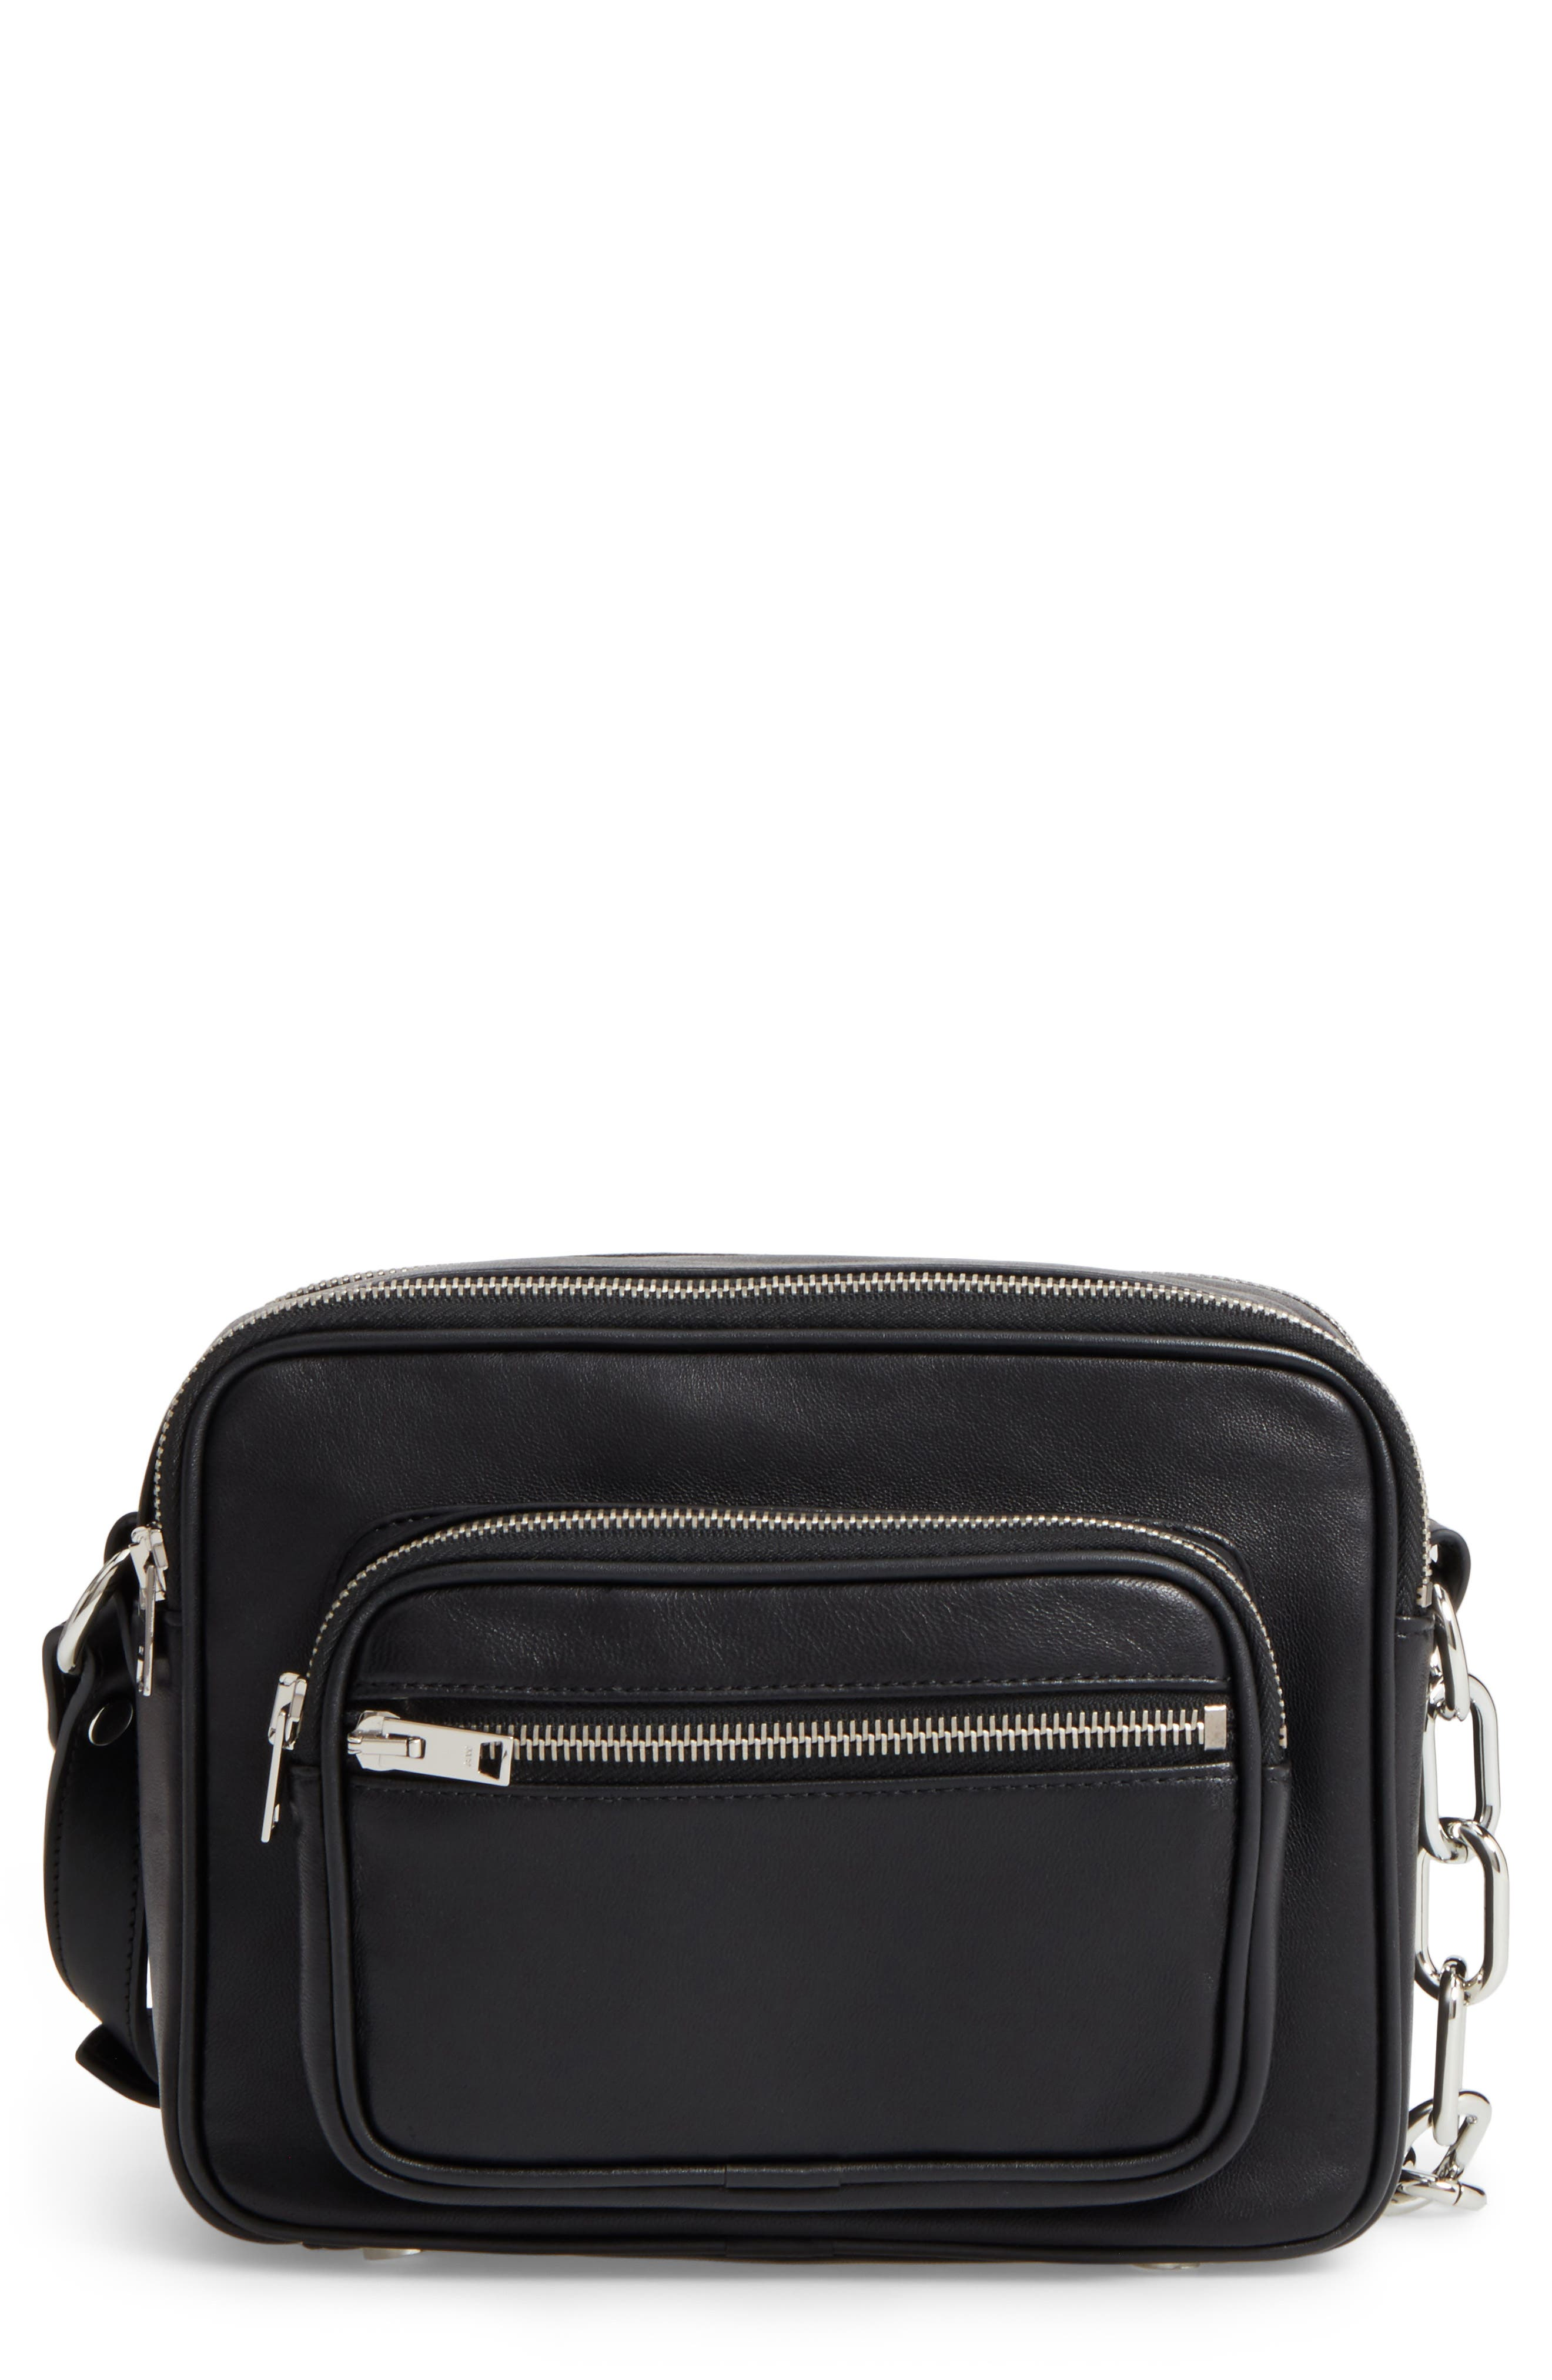 Washed Leather Crossbody Bag,                             Main thumbnail 1, color,                             BLACK